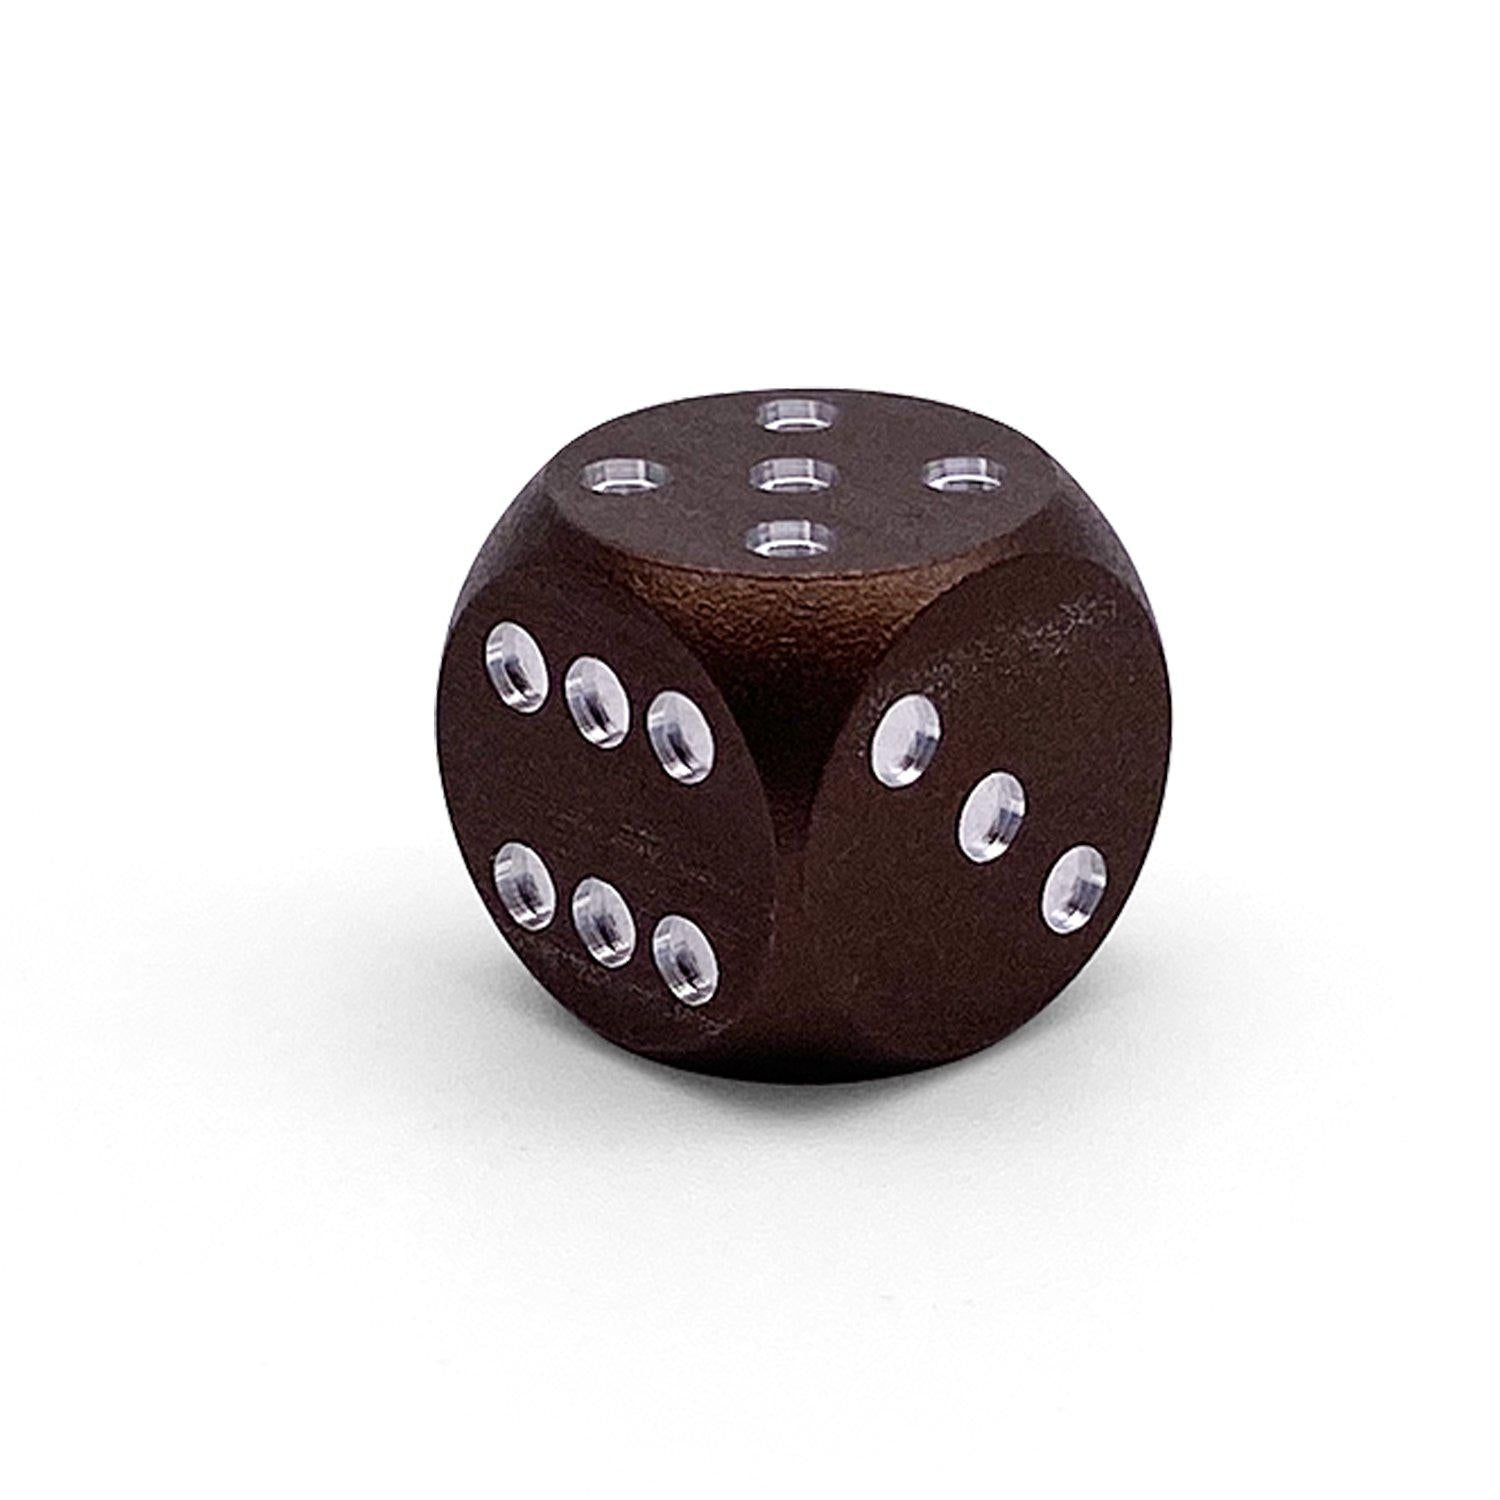 Single Aluminum D6 Mini - Round Edges - Leather Brown